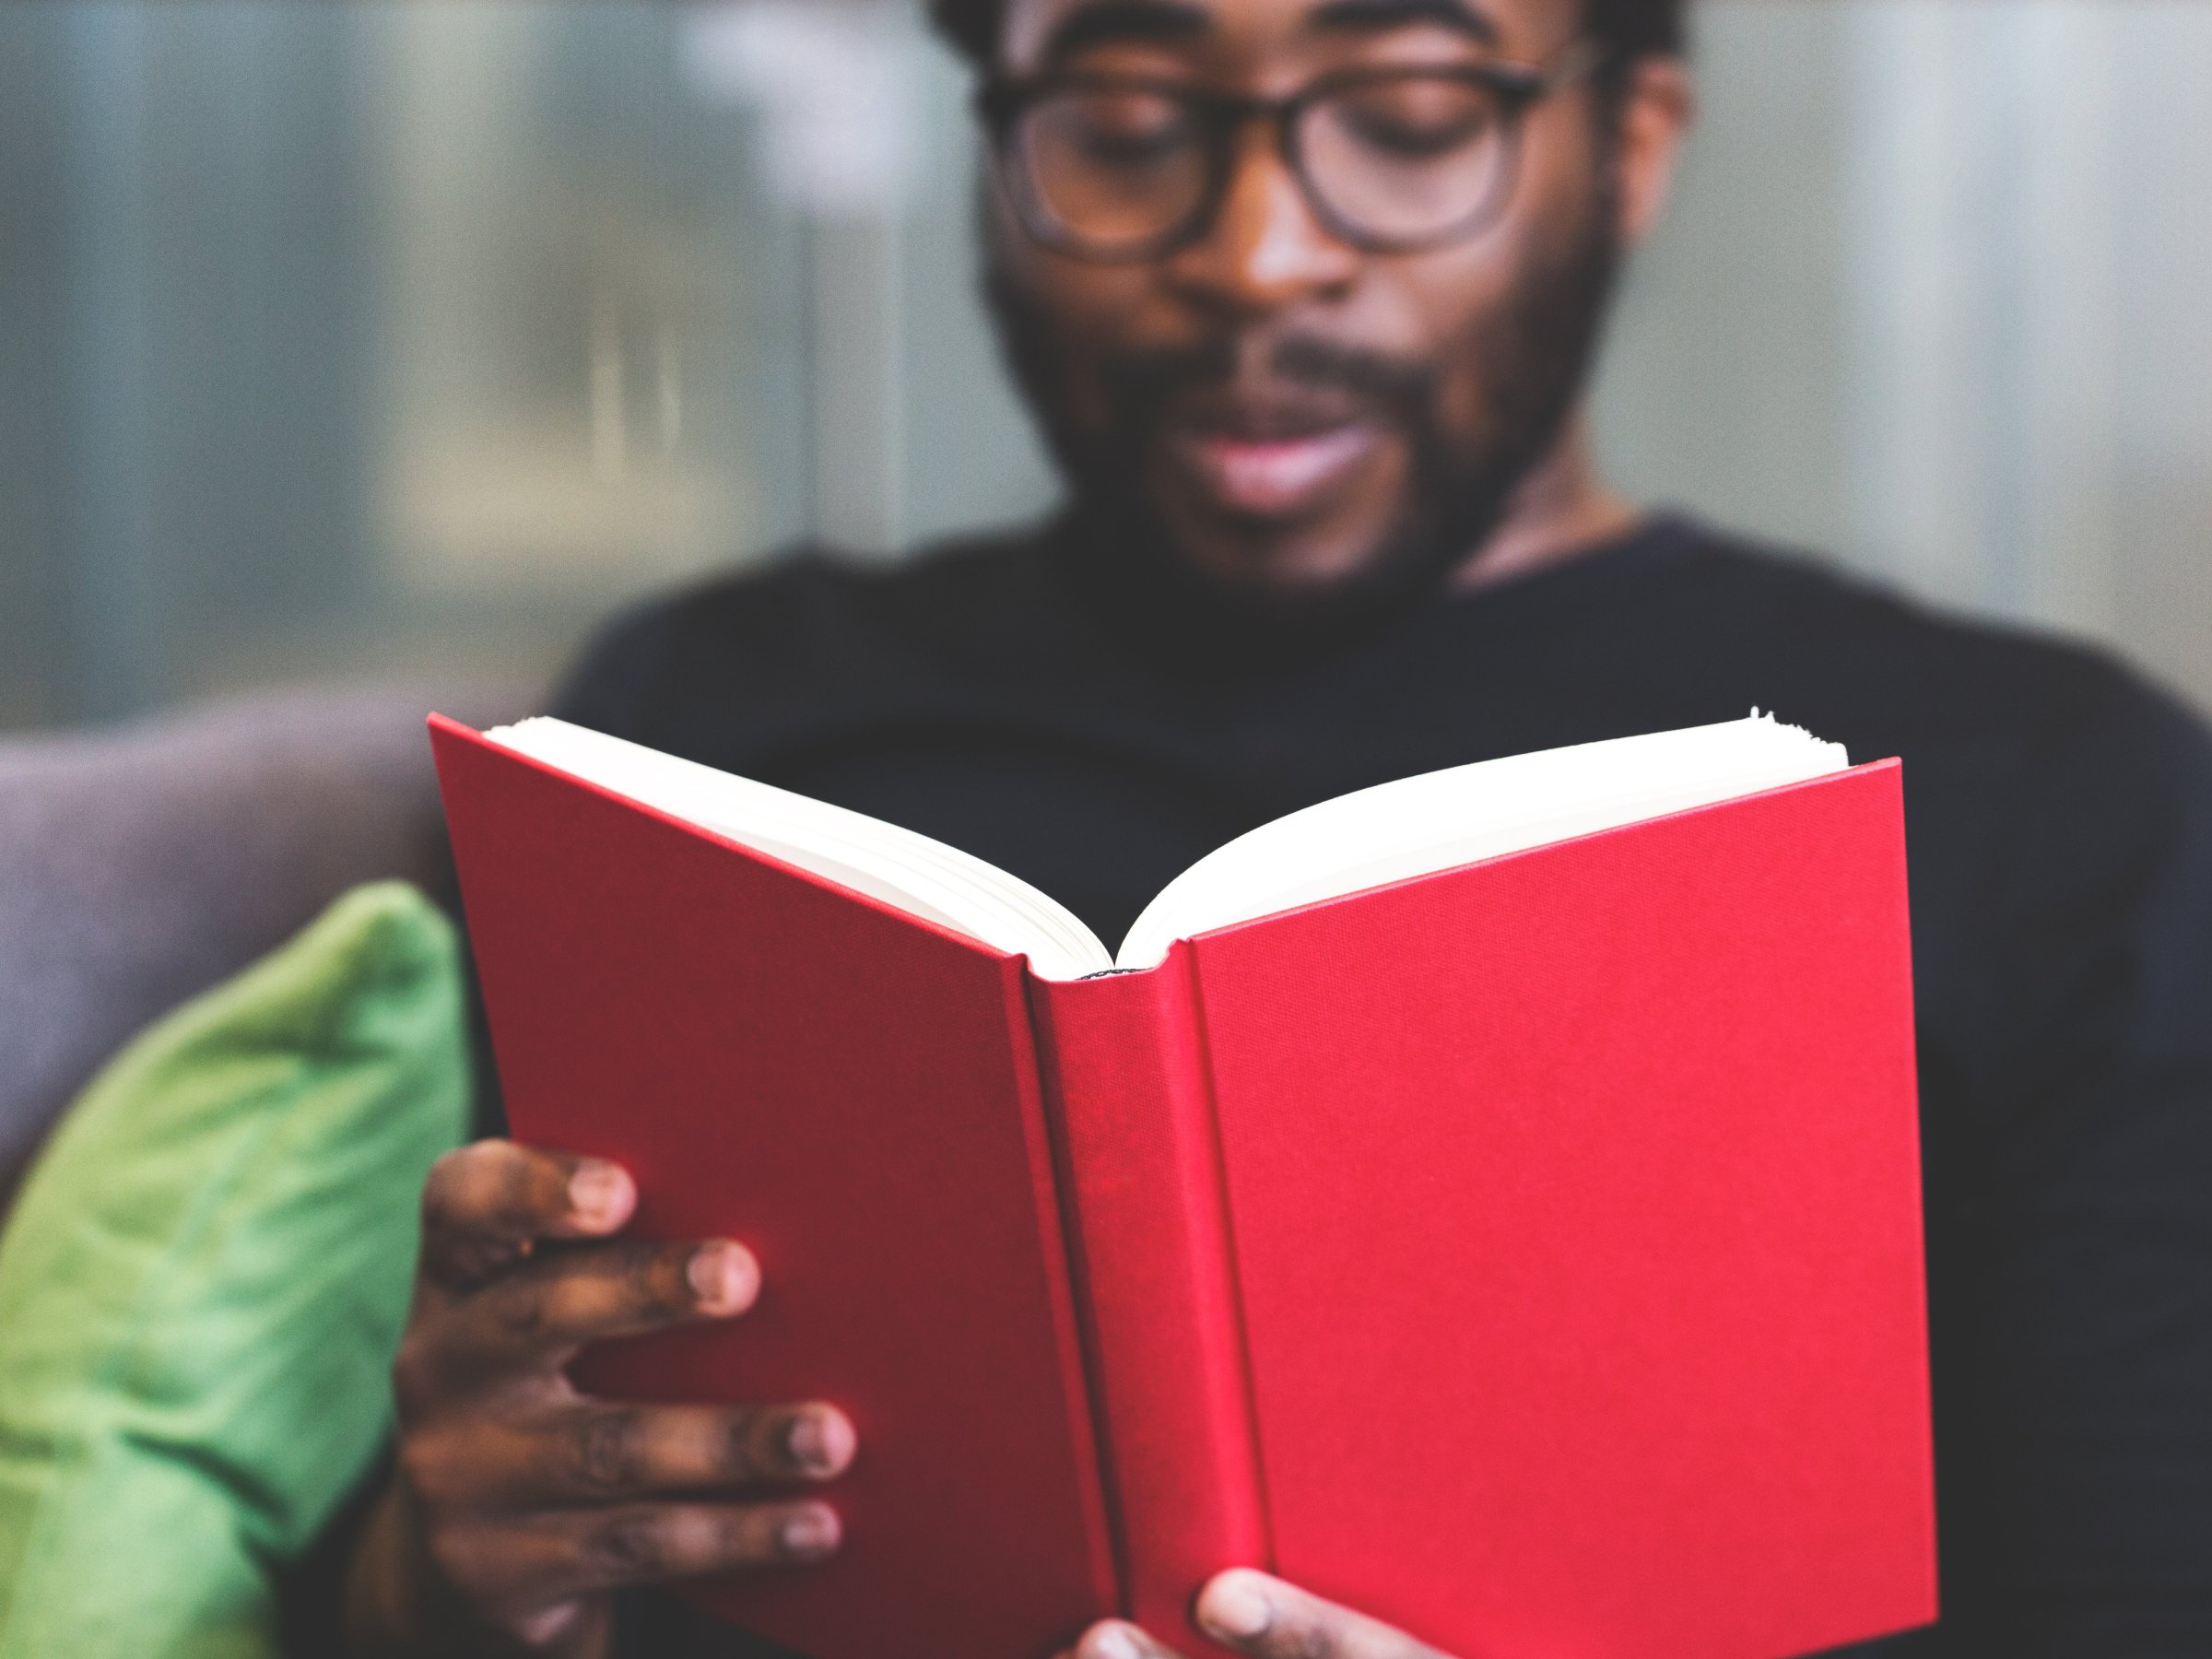 Black man with a beard and glasses sitting on a couch reading a red book